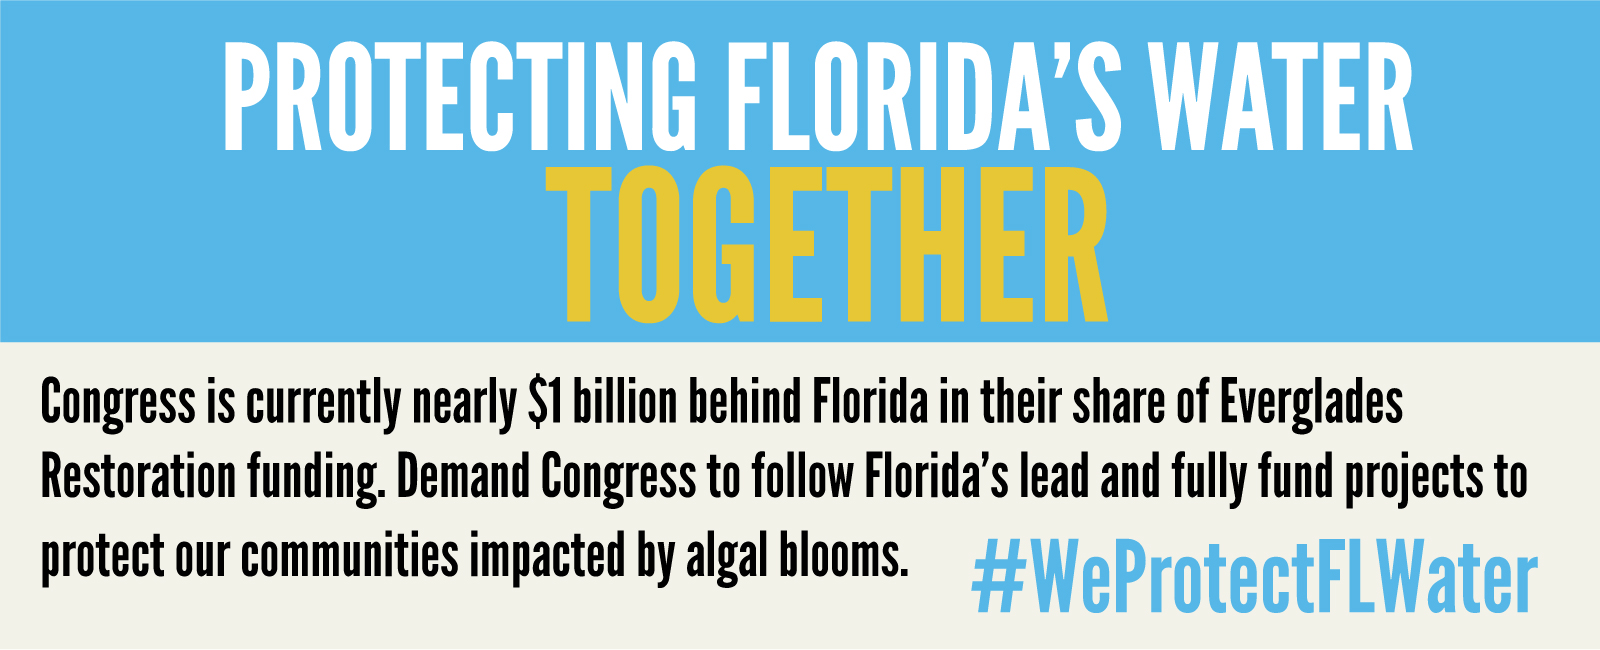 Congress is currently nearly $1 billion behind Florida in their share of Everglades Restoration funding. Demand Congress to follow Florida's lead and fully fund projects to protect our communities impacted by algal blooms. #WeProtectFLWater